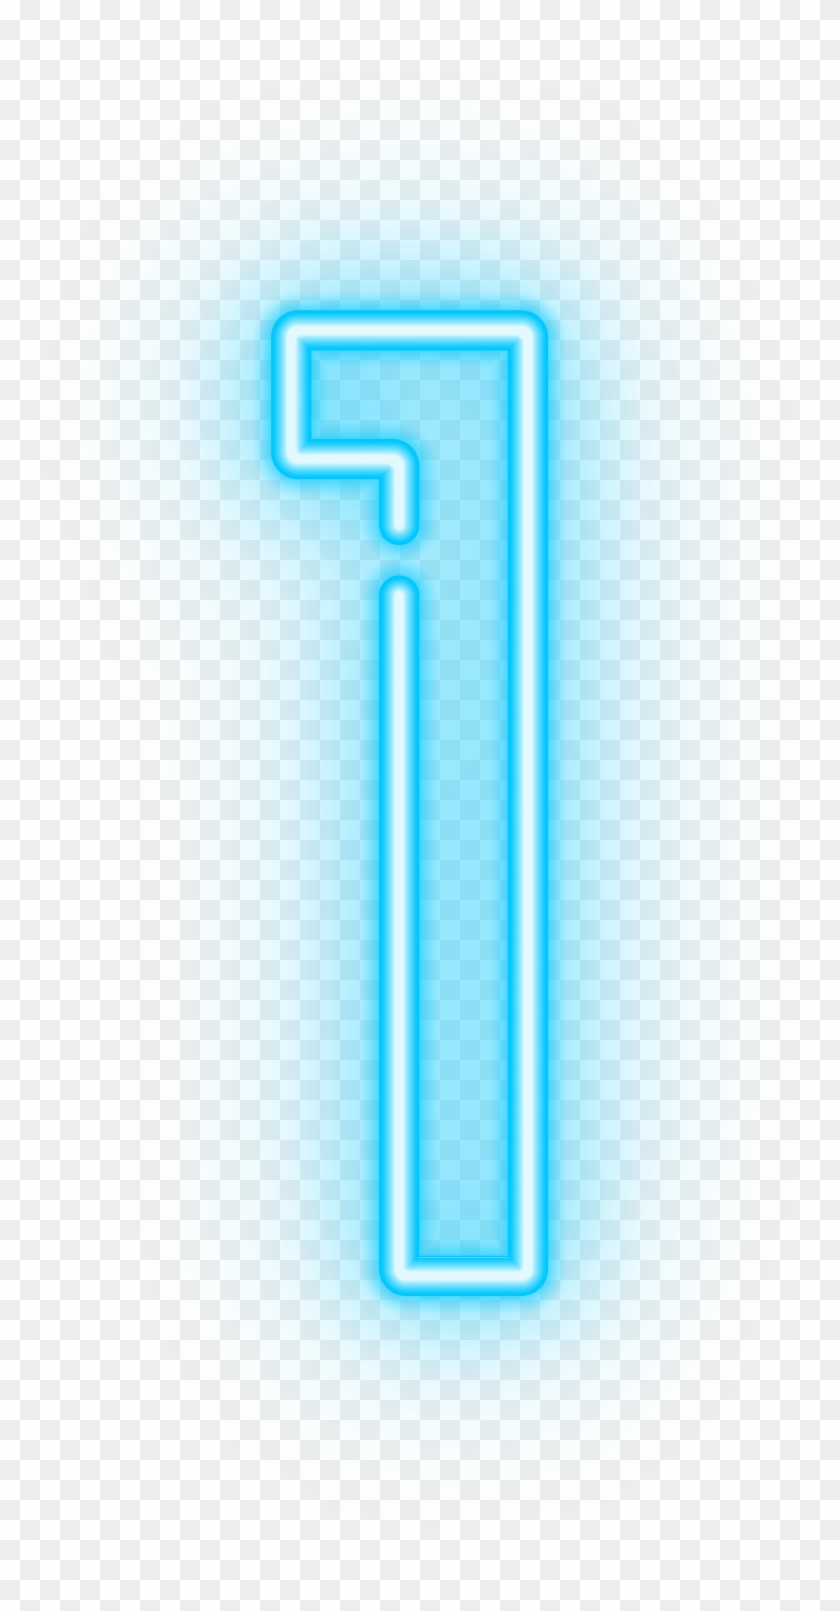 Neon Numbers Png - Neon Numbers Png , Png Download, Transparent Png - 4199x7856 ...